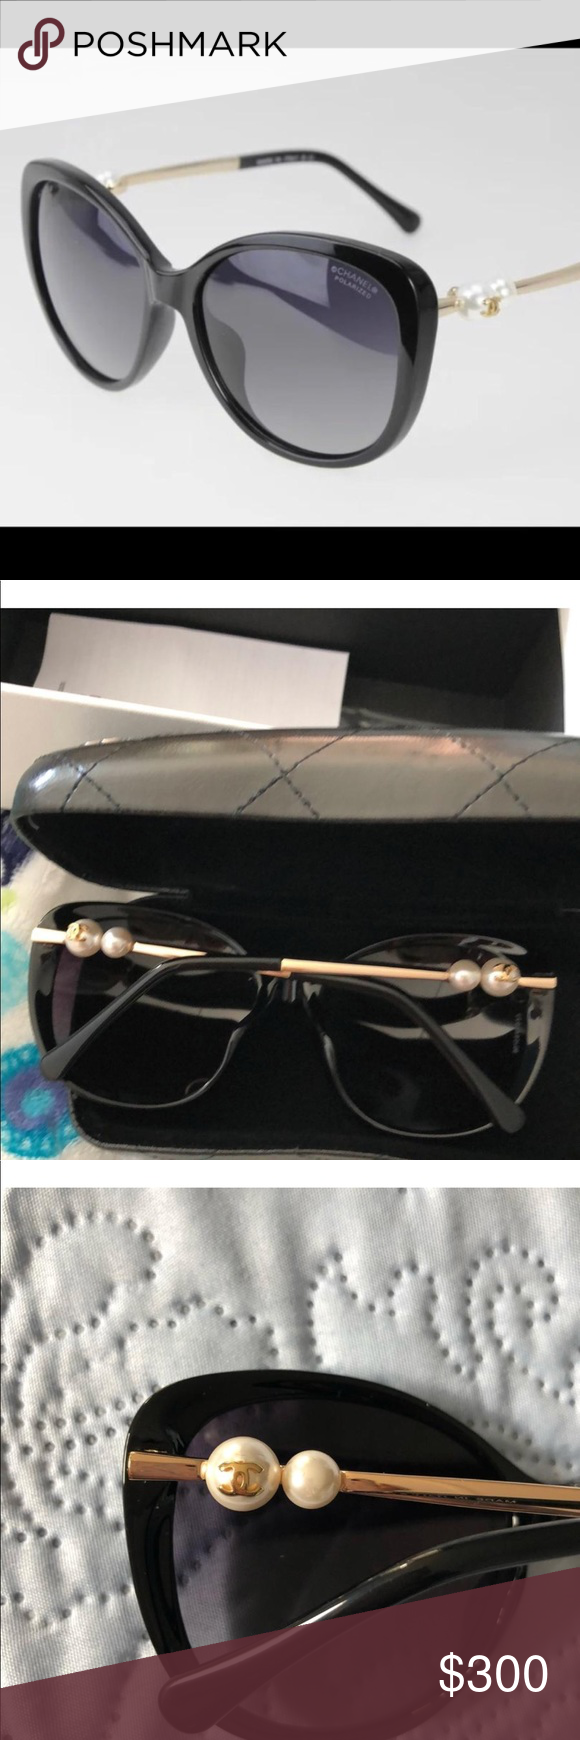 f2591286a48 NWT Chanel pearl collection sunglasses box case Brand new never used sunglasses  CHANEL Accessories Sunglasses